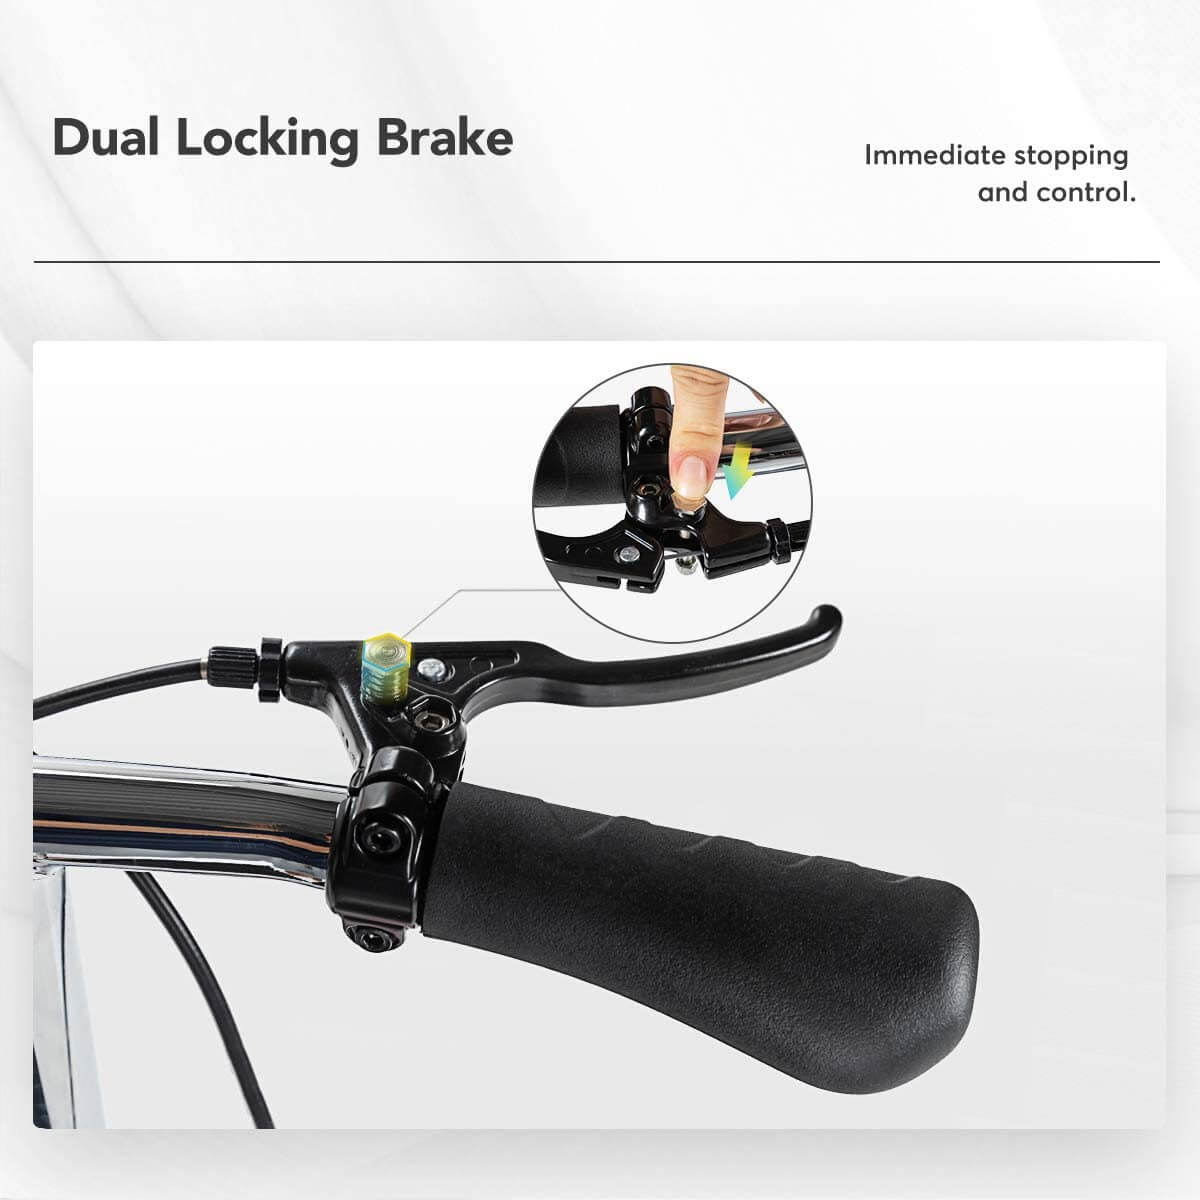 heavy duty Knee scooter with safety knee pad